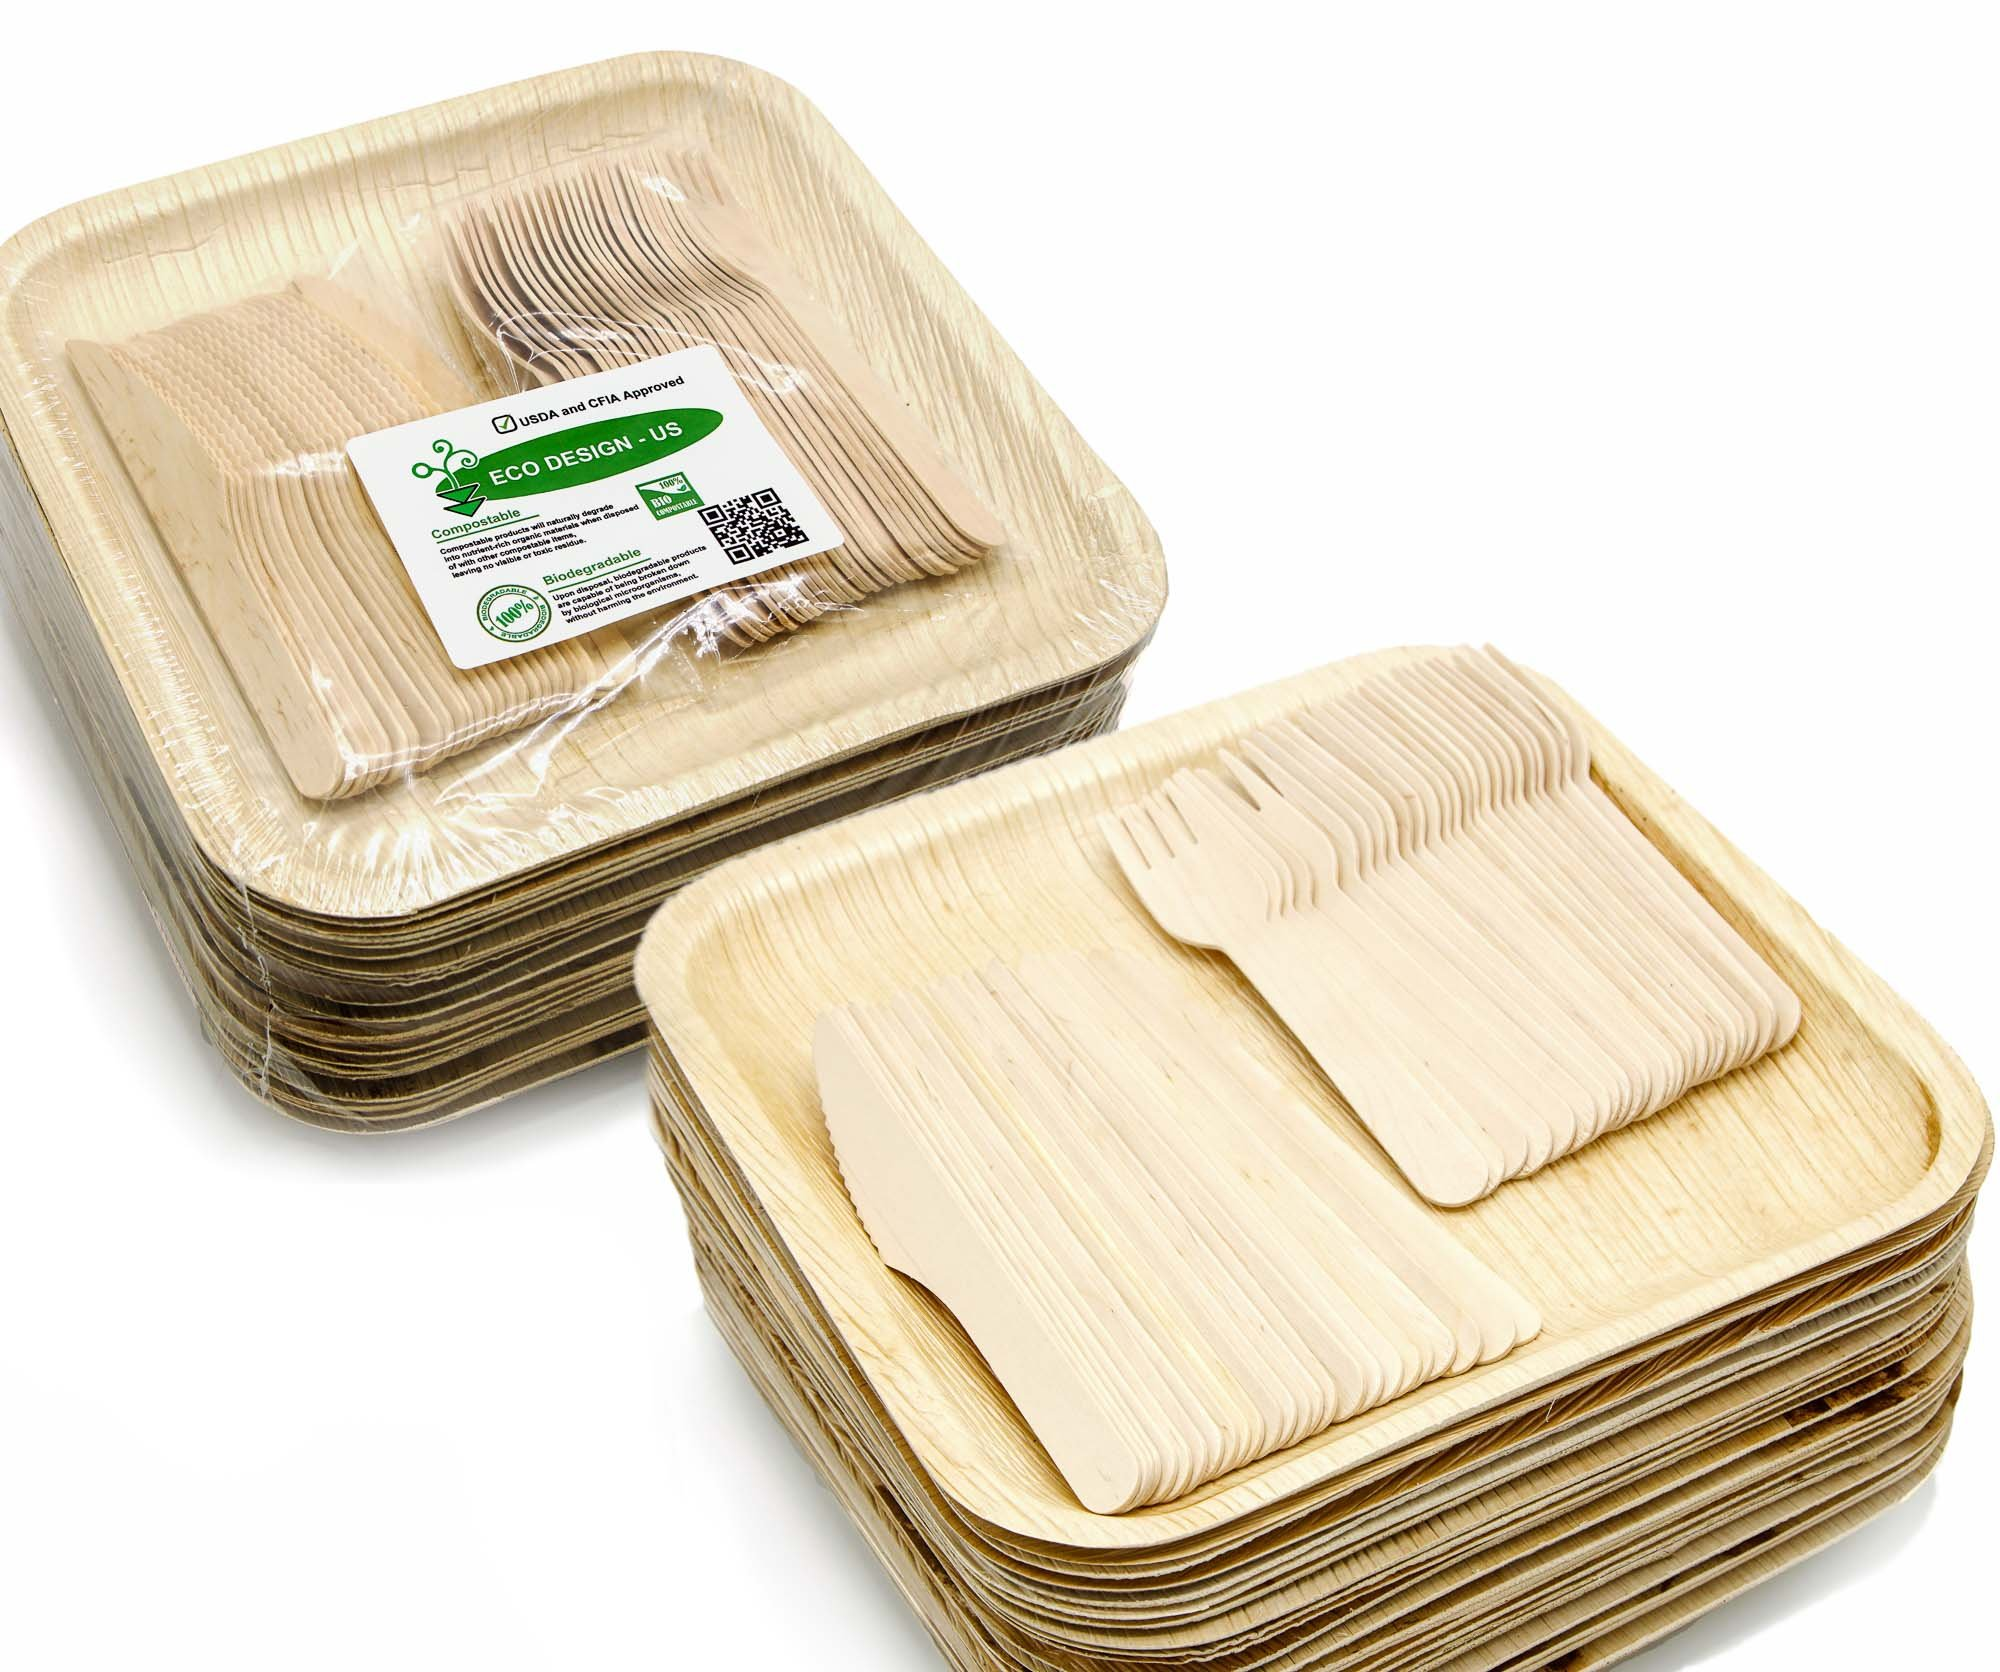 """Party Set of 150 Eco-Friendly Dinnerware - 50 Large Square 10"""" Palm Leaf Plates, 50 Wood Forks, 50 Wood Knives - Elegant Disposable Compostable"""